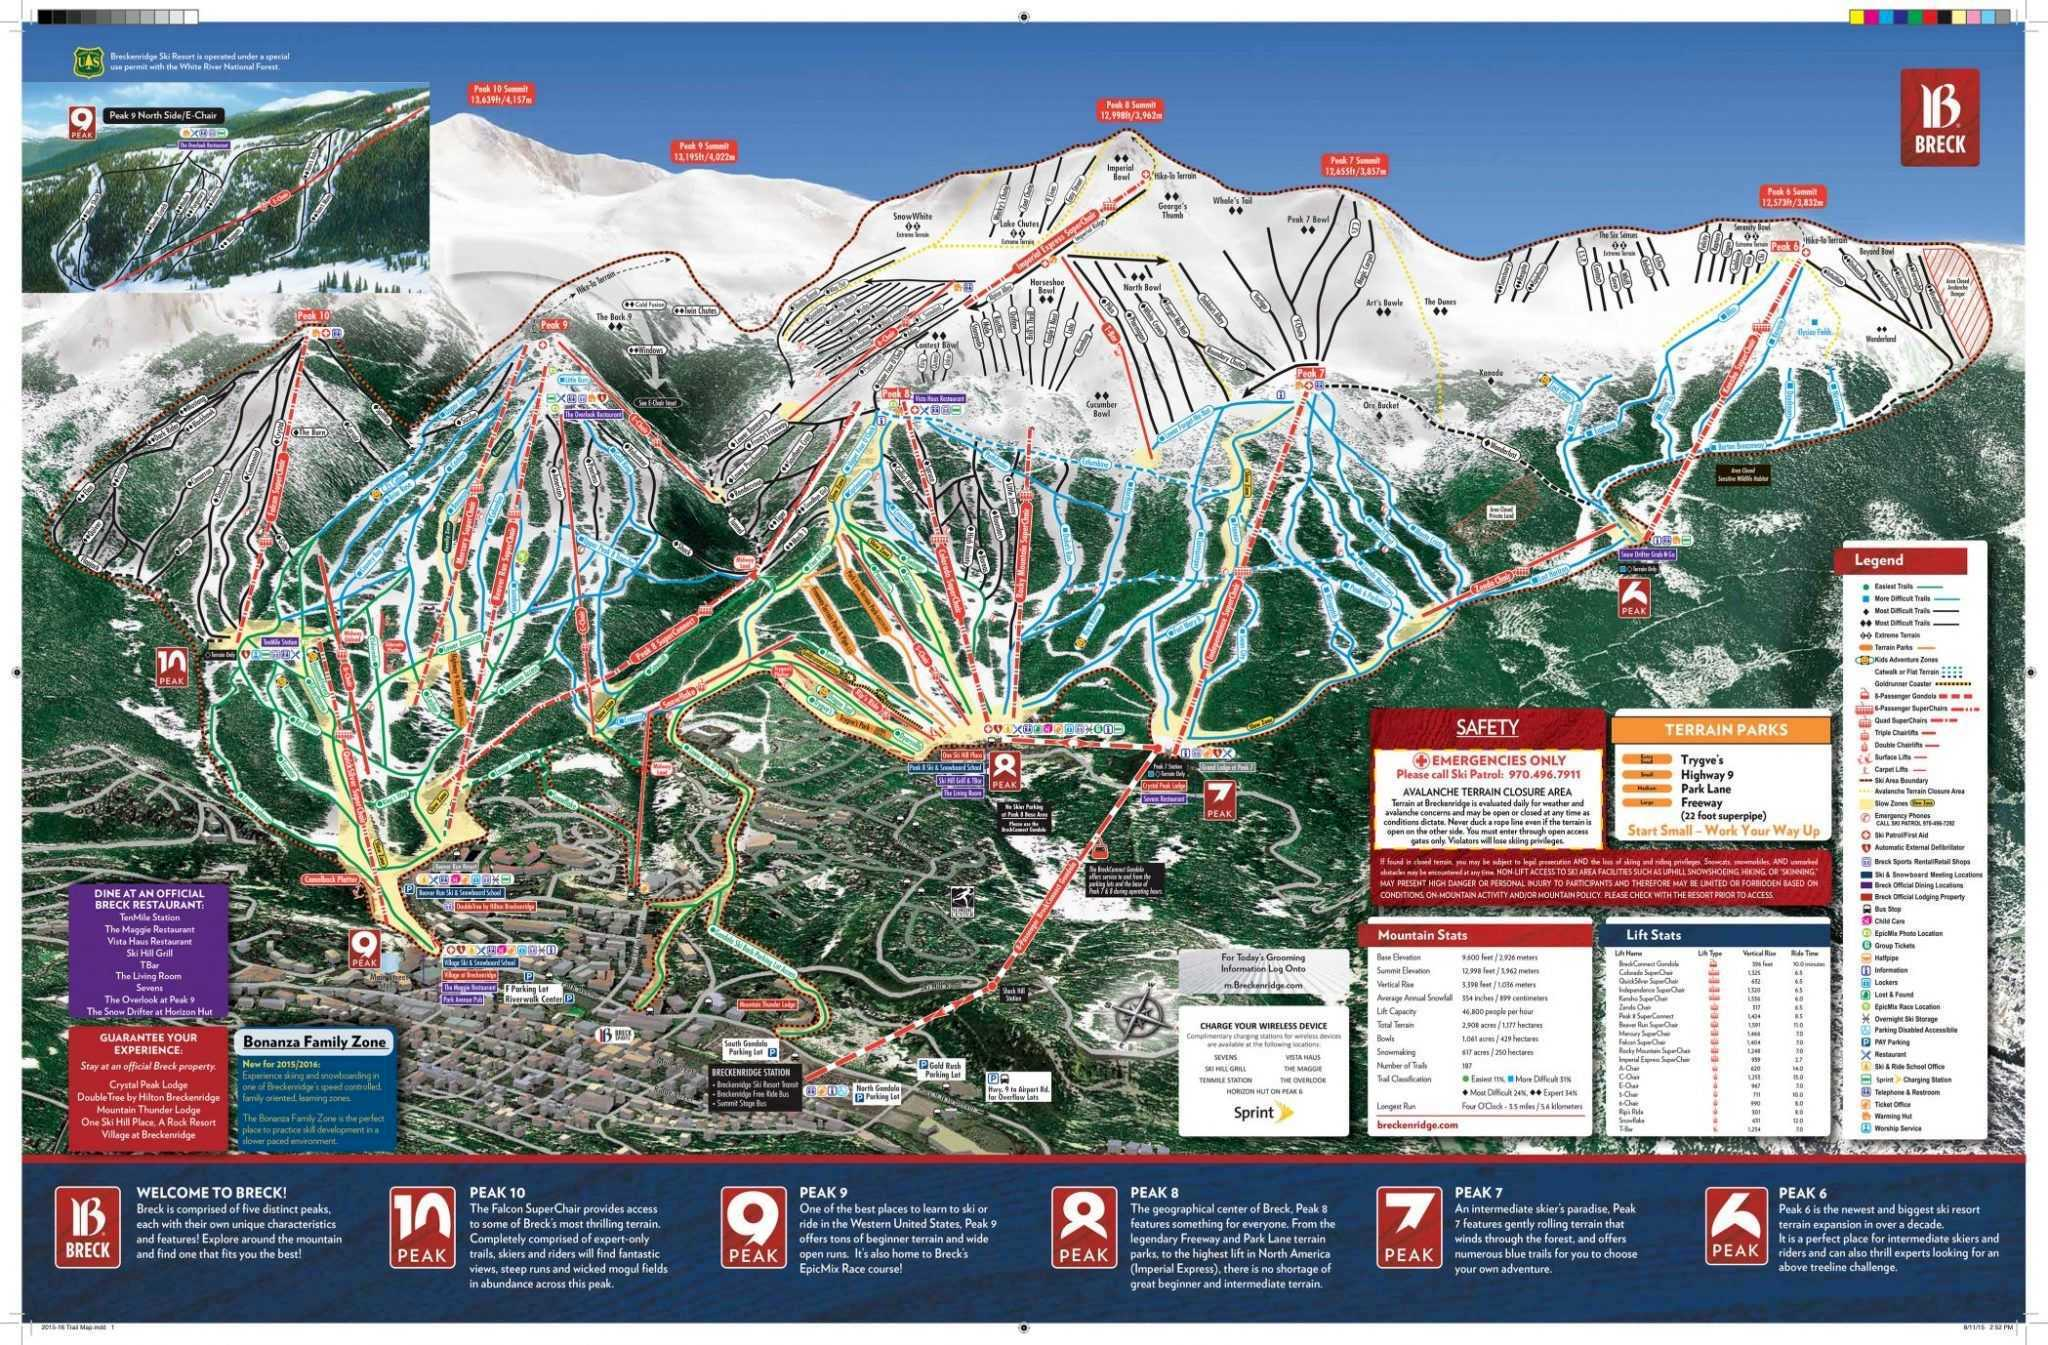 breckenridge-winter-trail-map